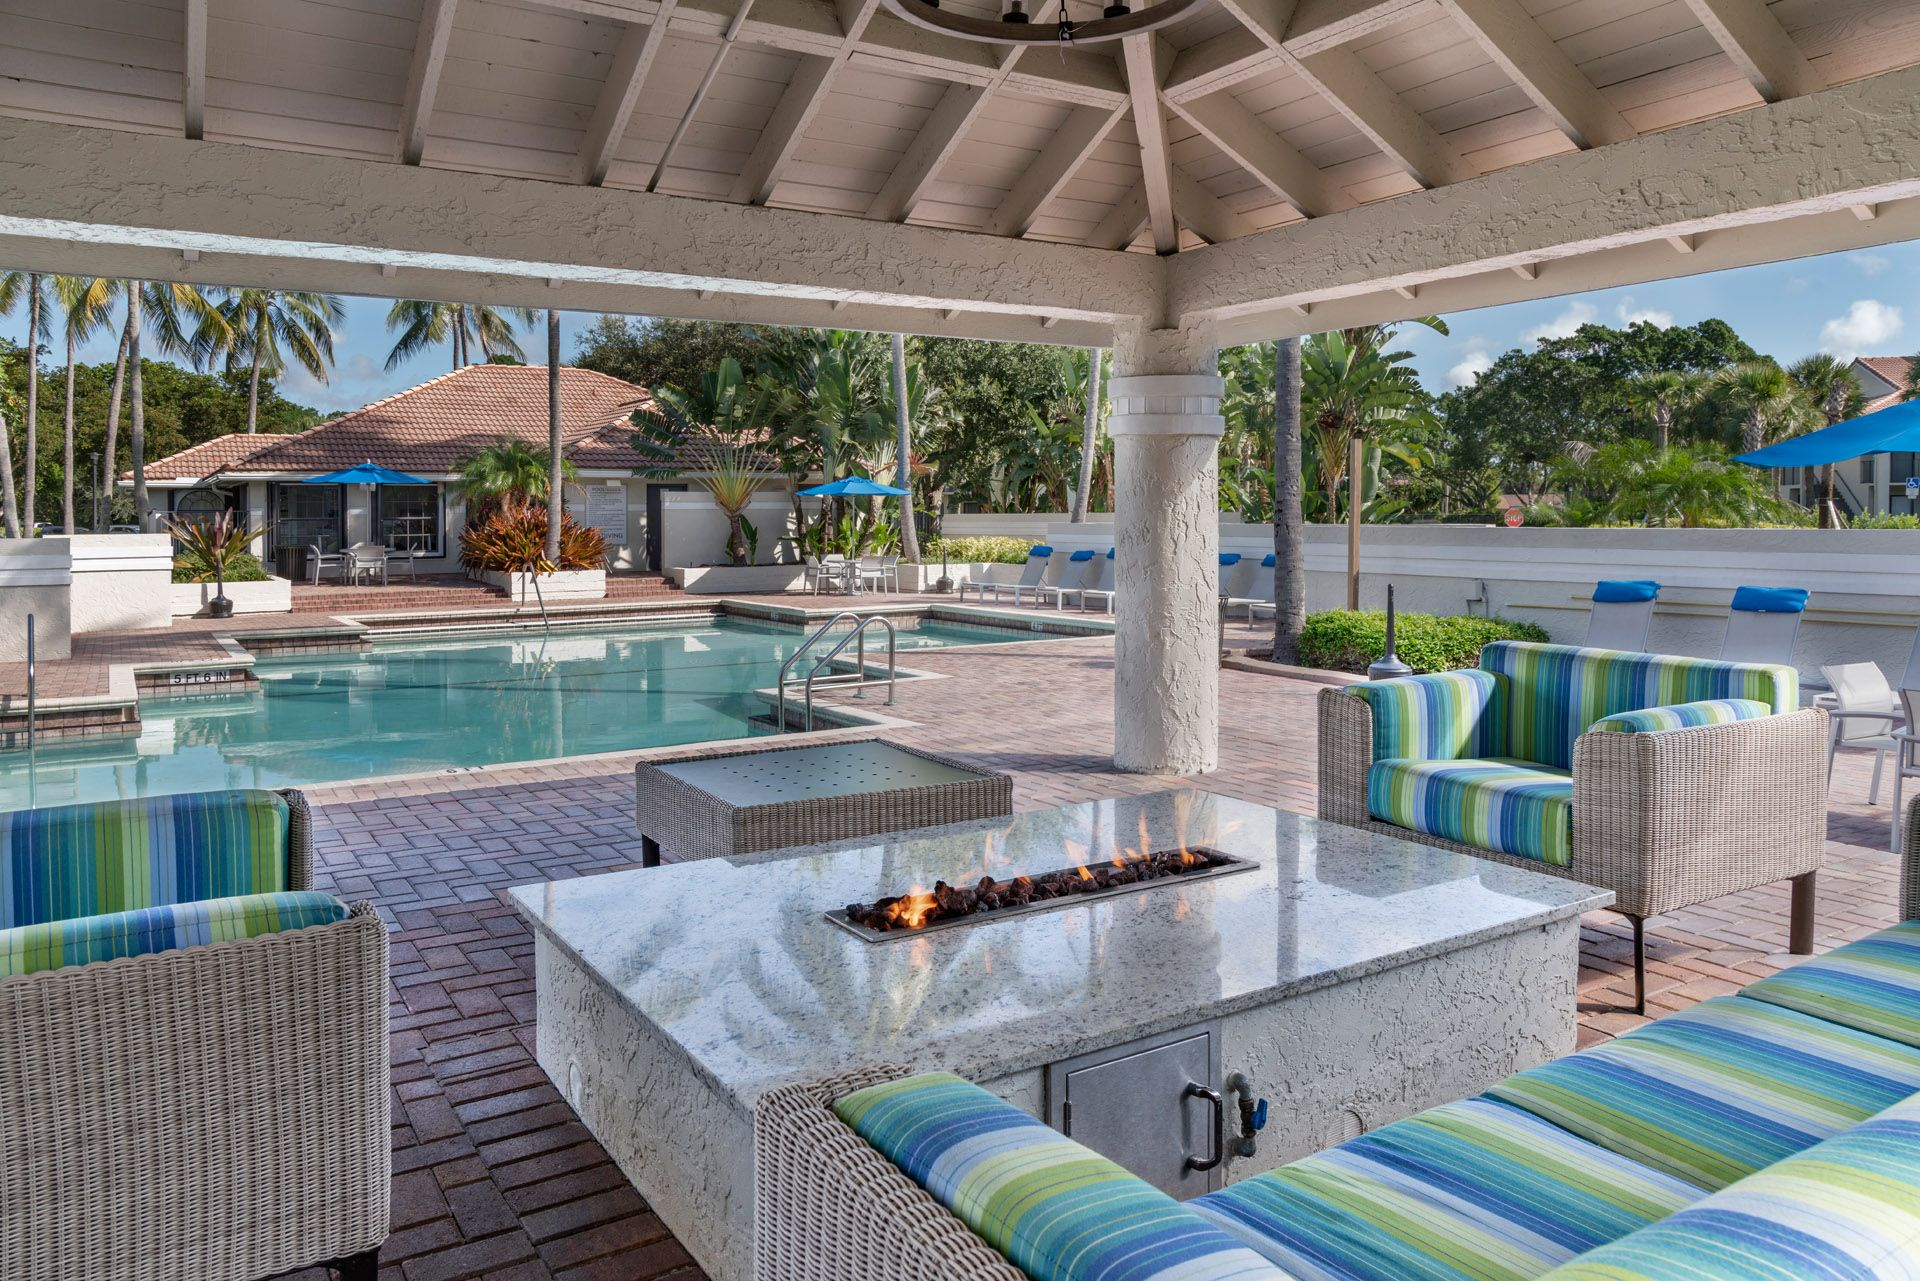 Outdoor fire pit next to swimming pool